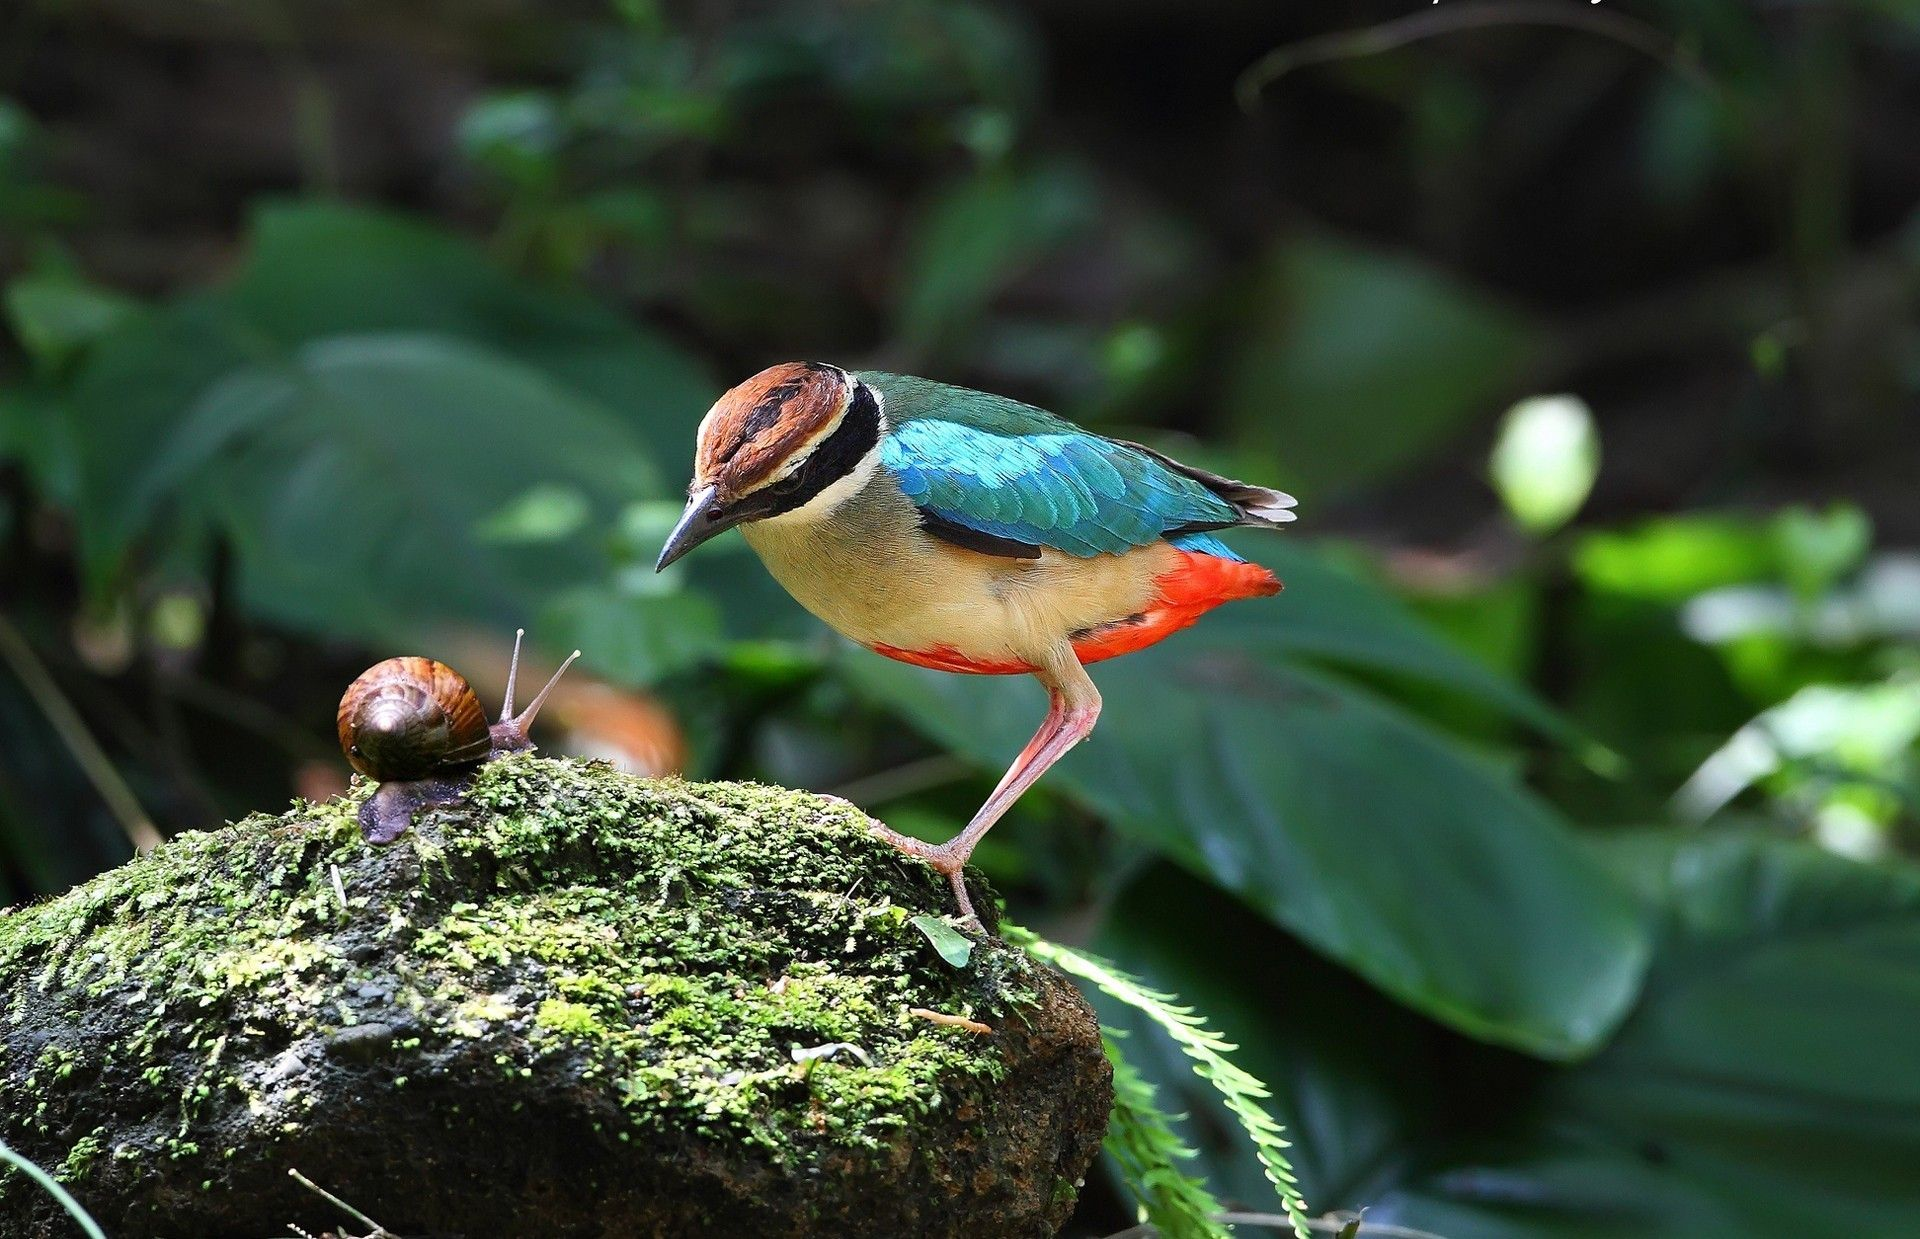 Birds: Snail Animals Birds Nature Bird Snails Wallpapers With And